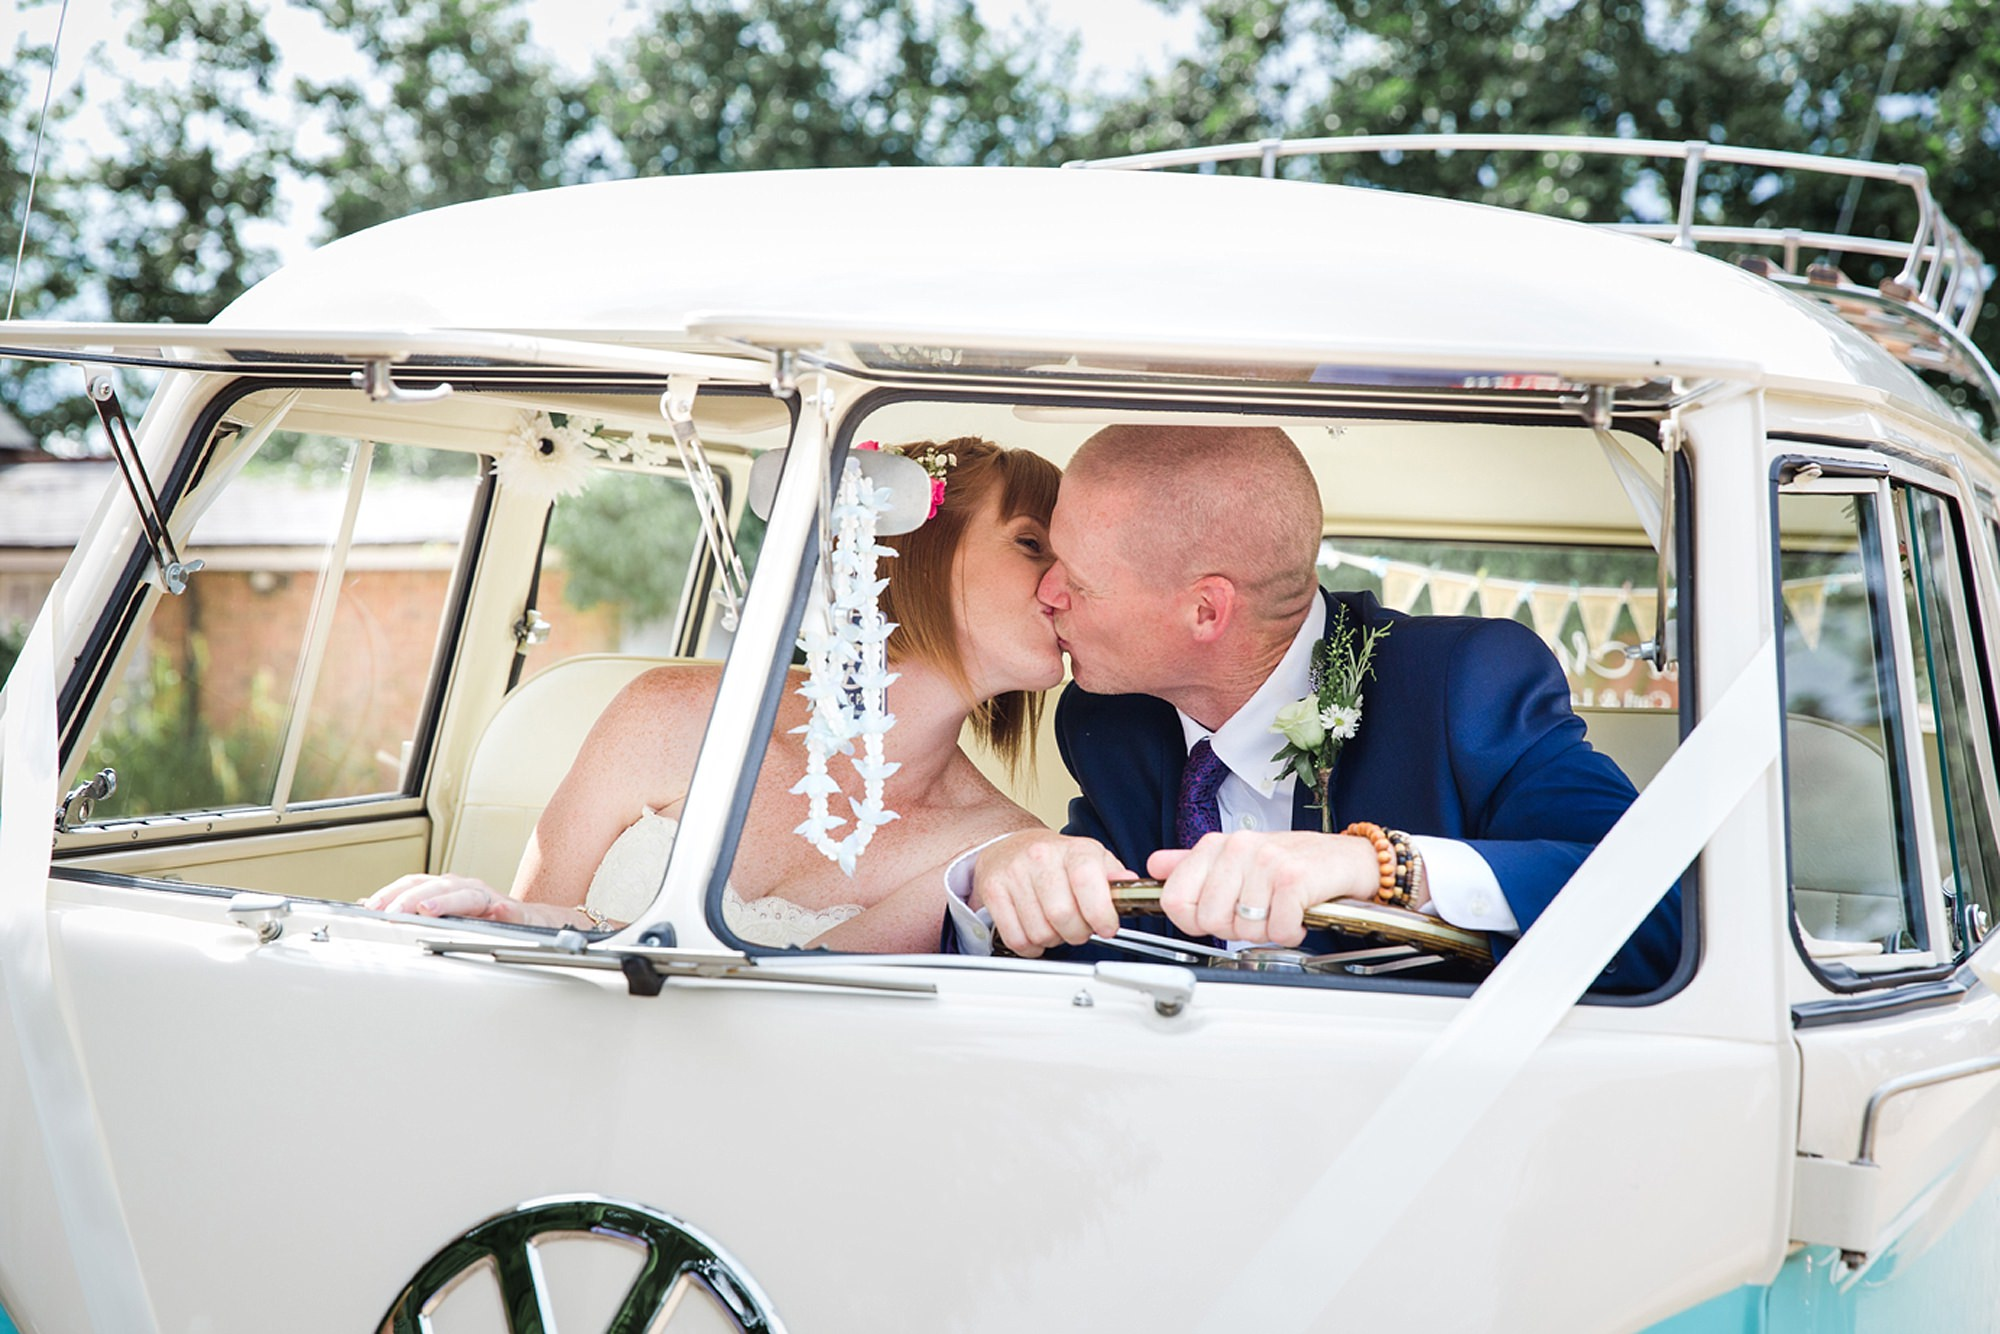 Mill House hotel wedding photography bride and groom kiss in camper van